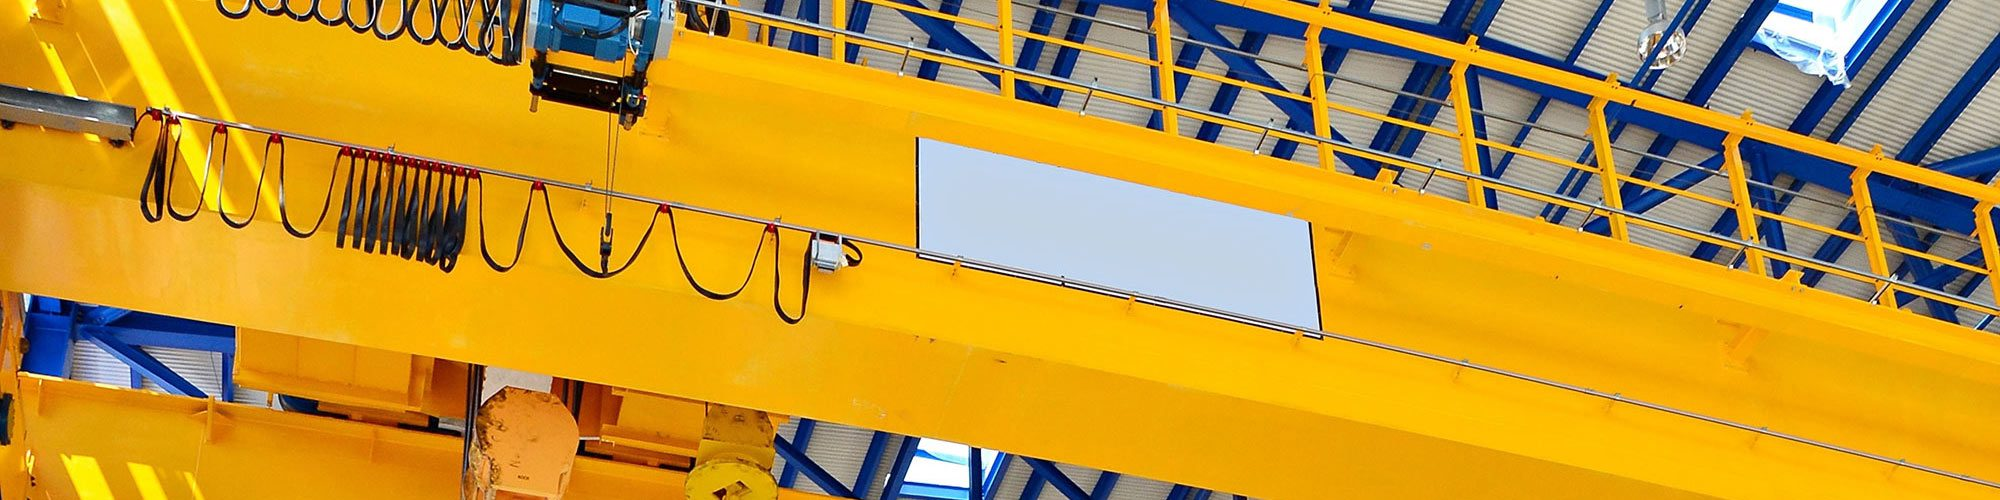 Hoisting technology and cranes without downtime